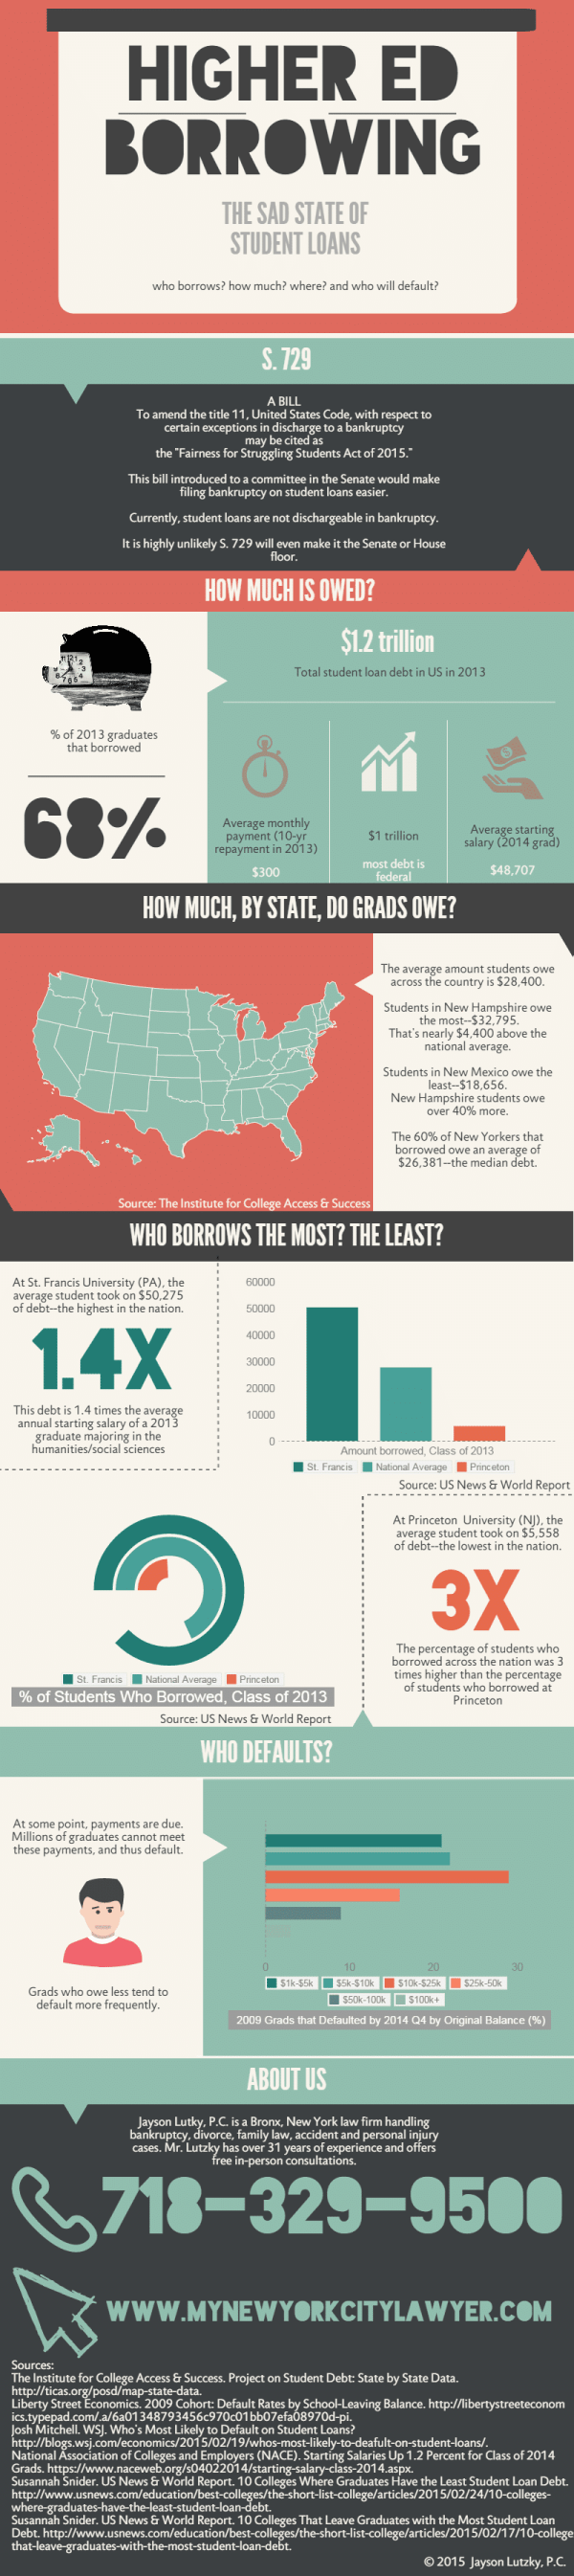 Infographic Higher Ed Borrowing - Sad State Of